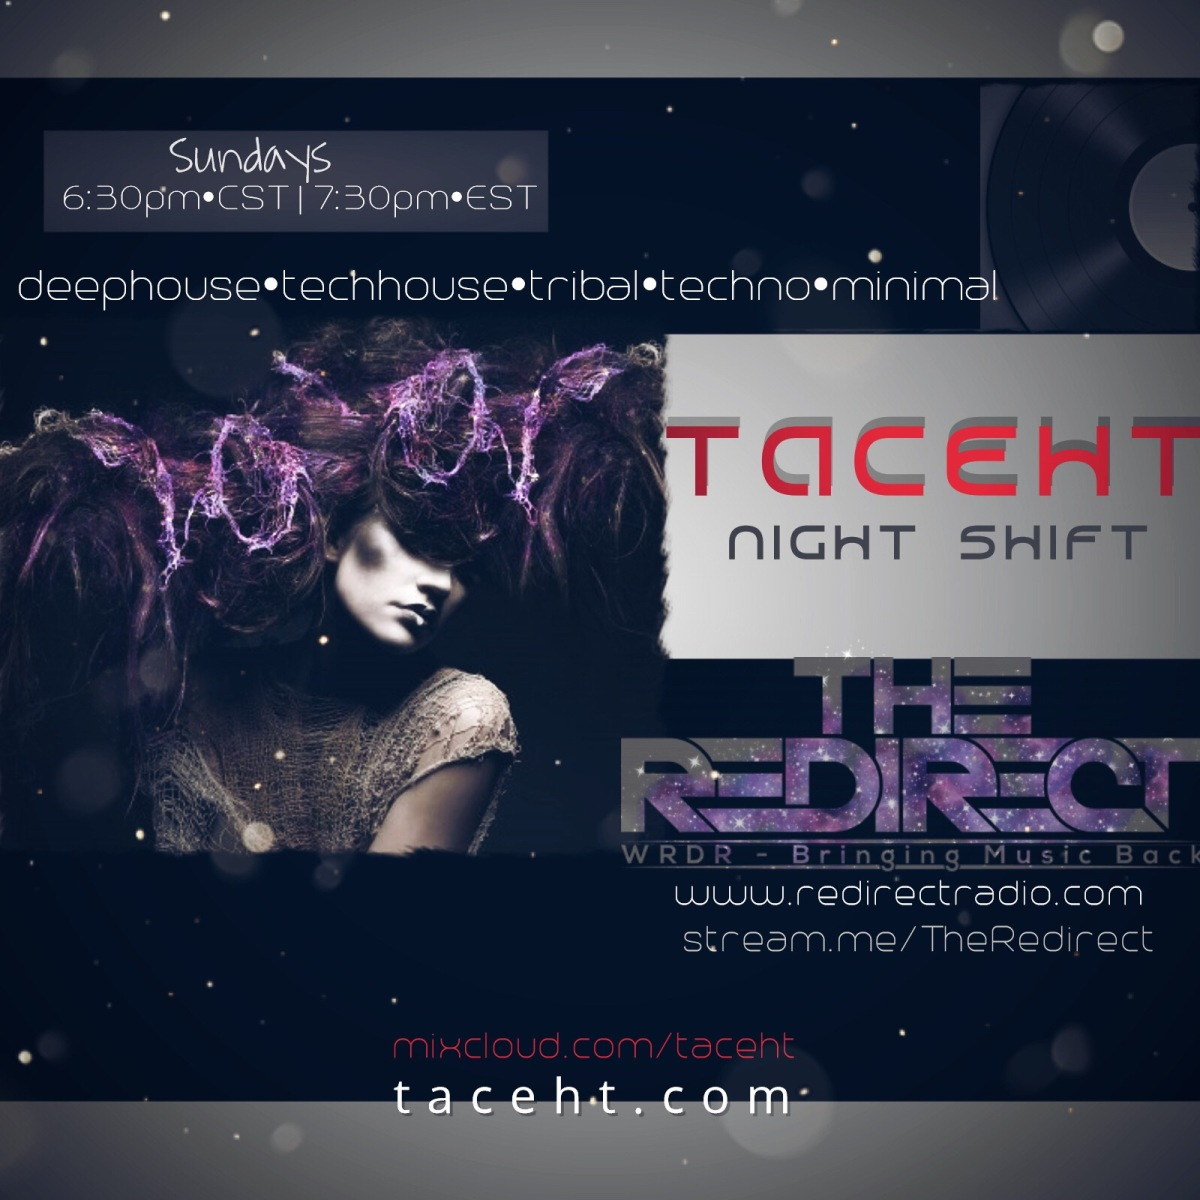 Night Shift with TacehT Live Sundays on Redirect Radio